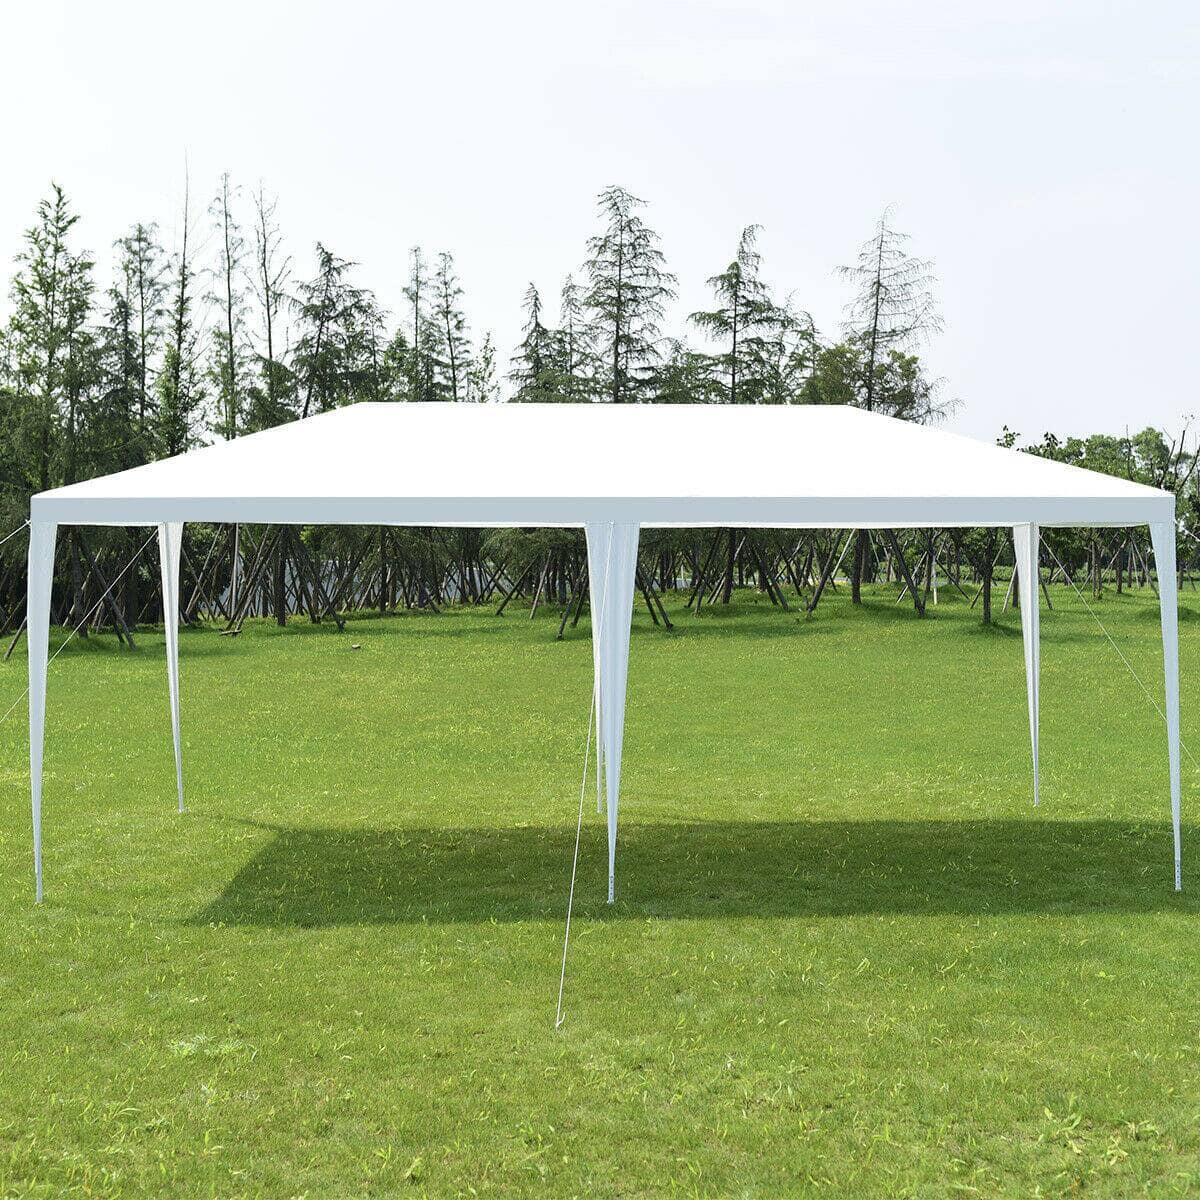 Costway 10' x 20' Outdoor Party Wedding Canopy Gazebo Pavilion Event Tent for $58.95 + Free Shipping